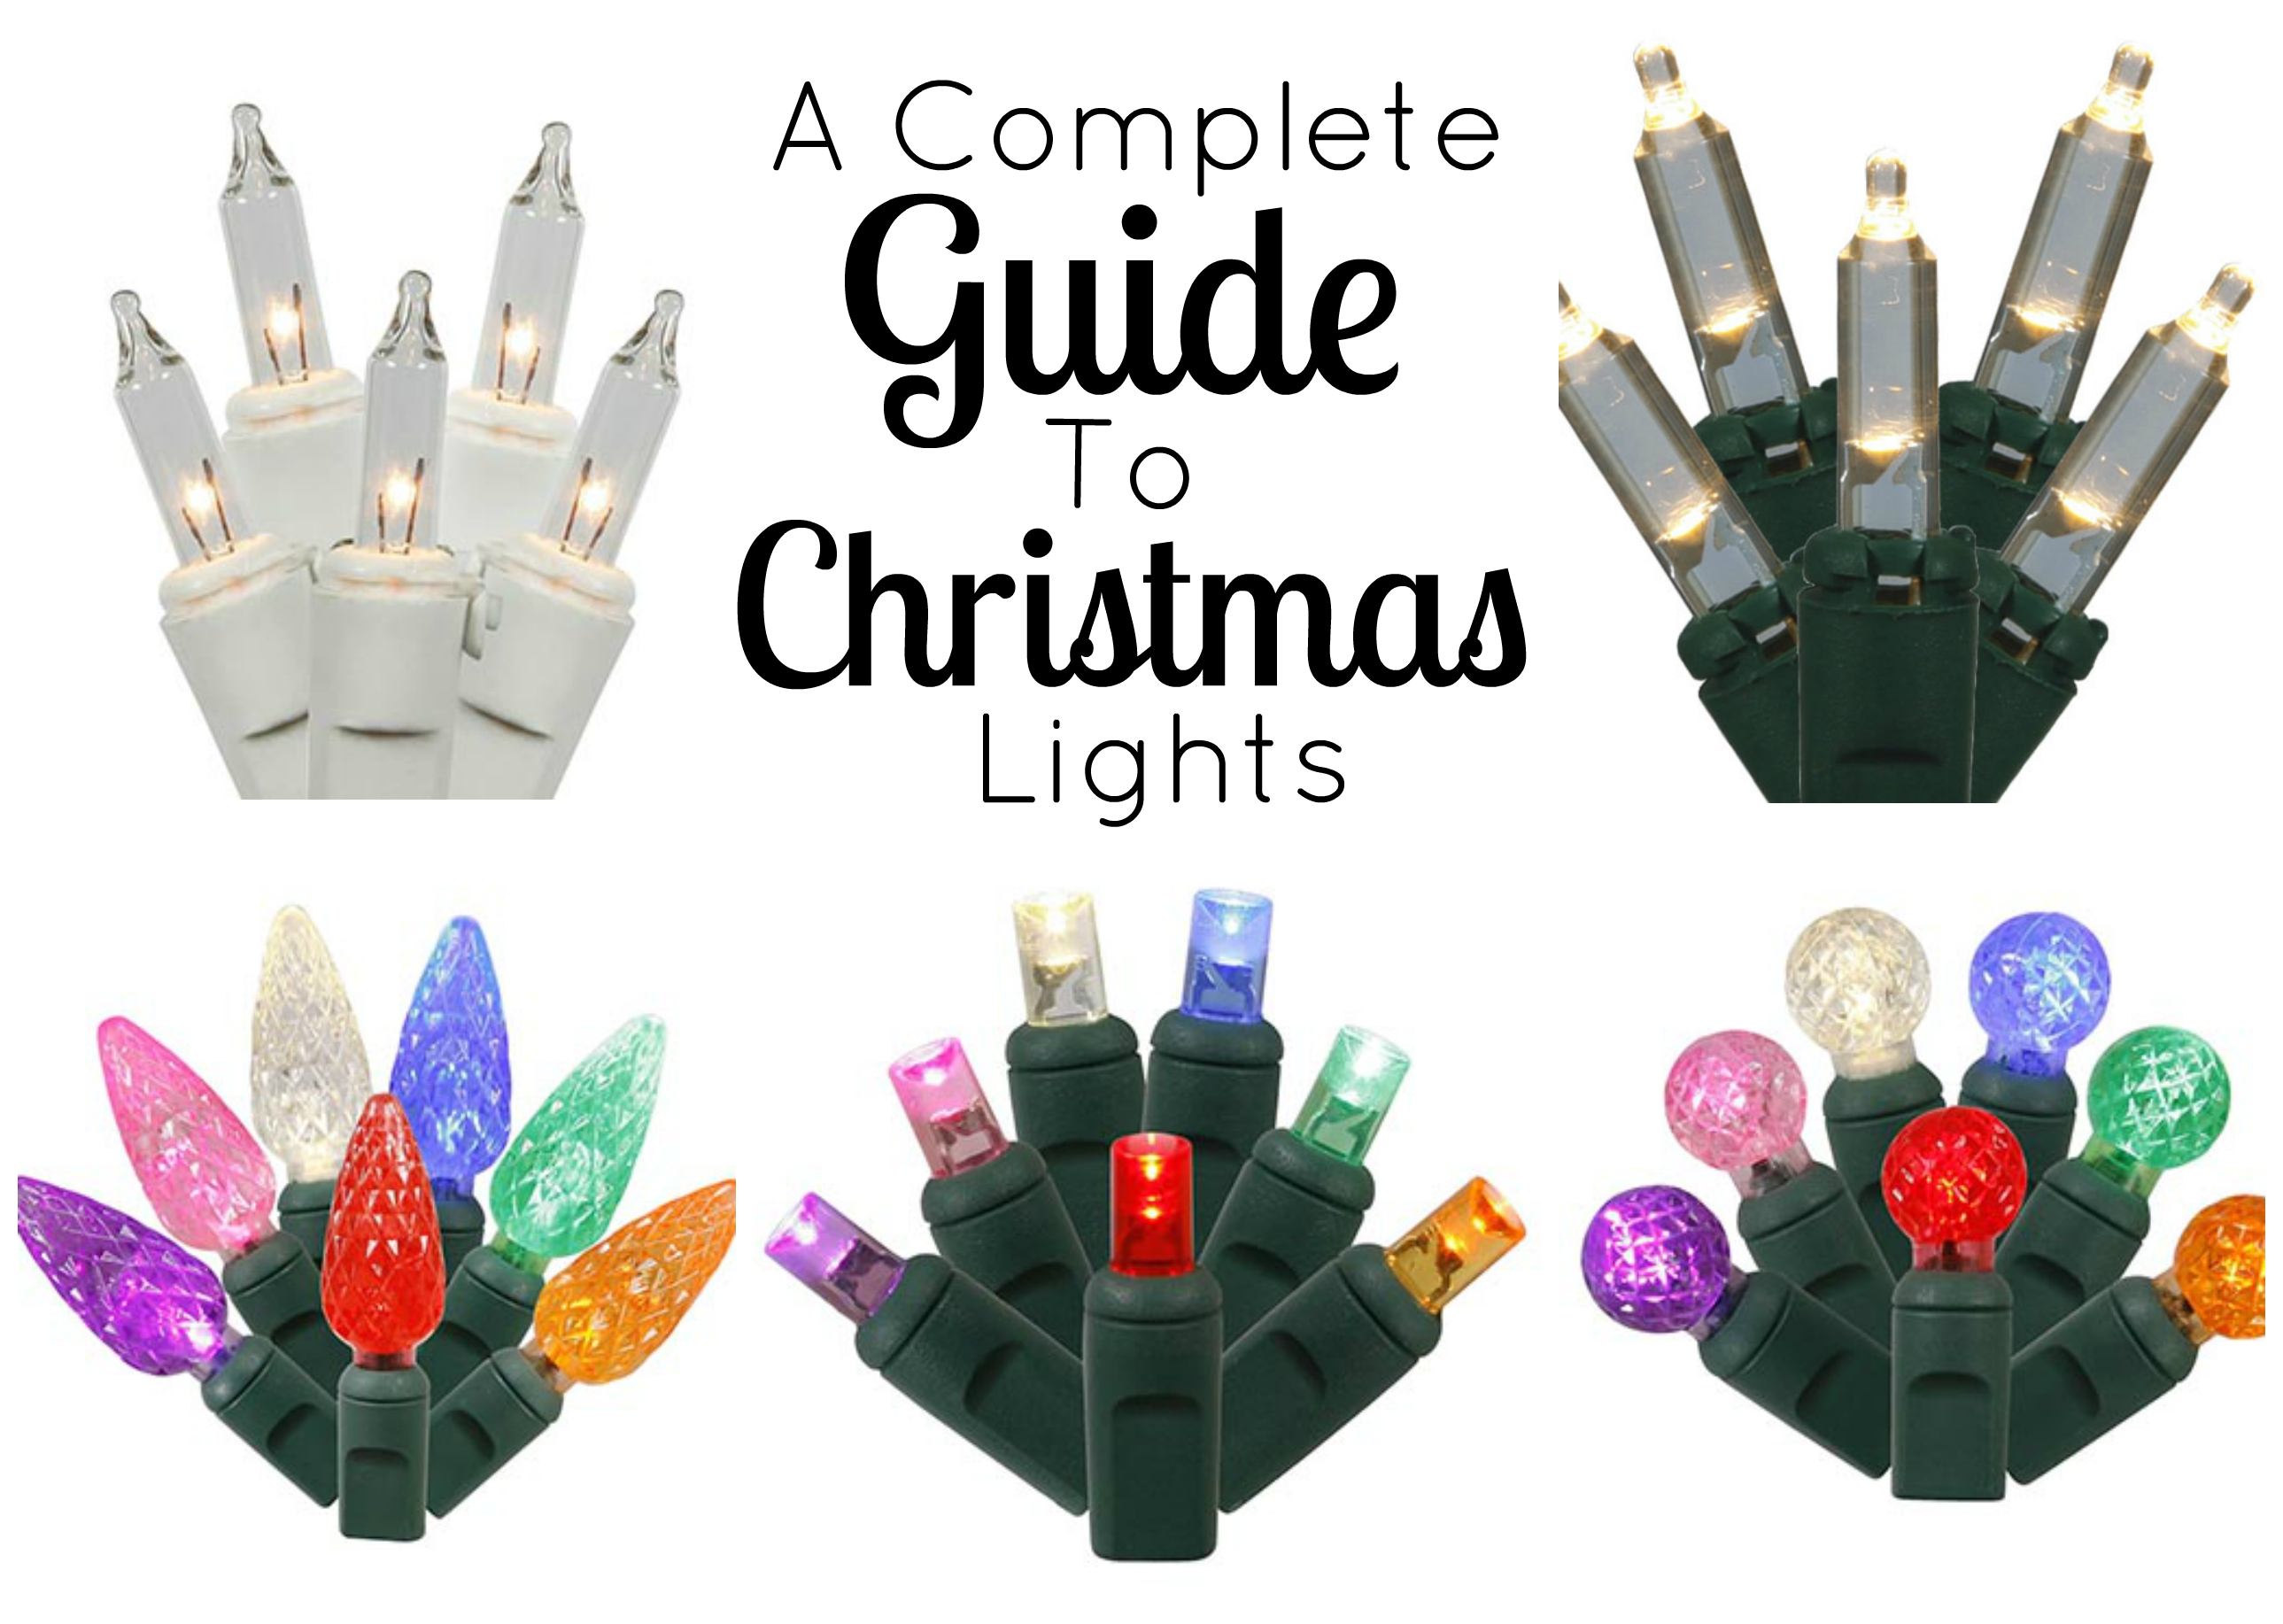 Mini lights are one of the most popular varieties of Christmas lights